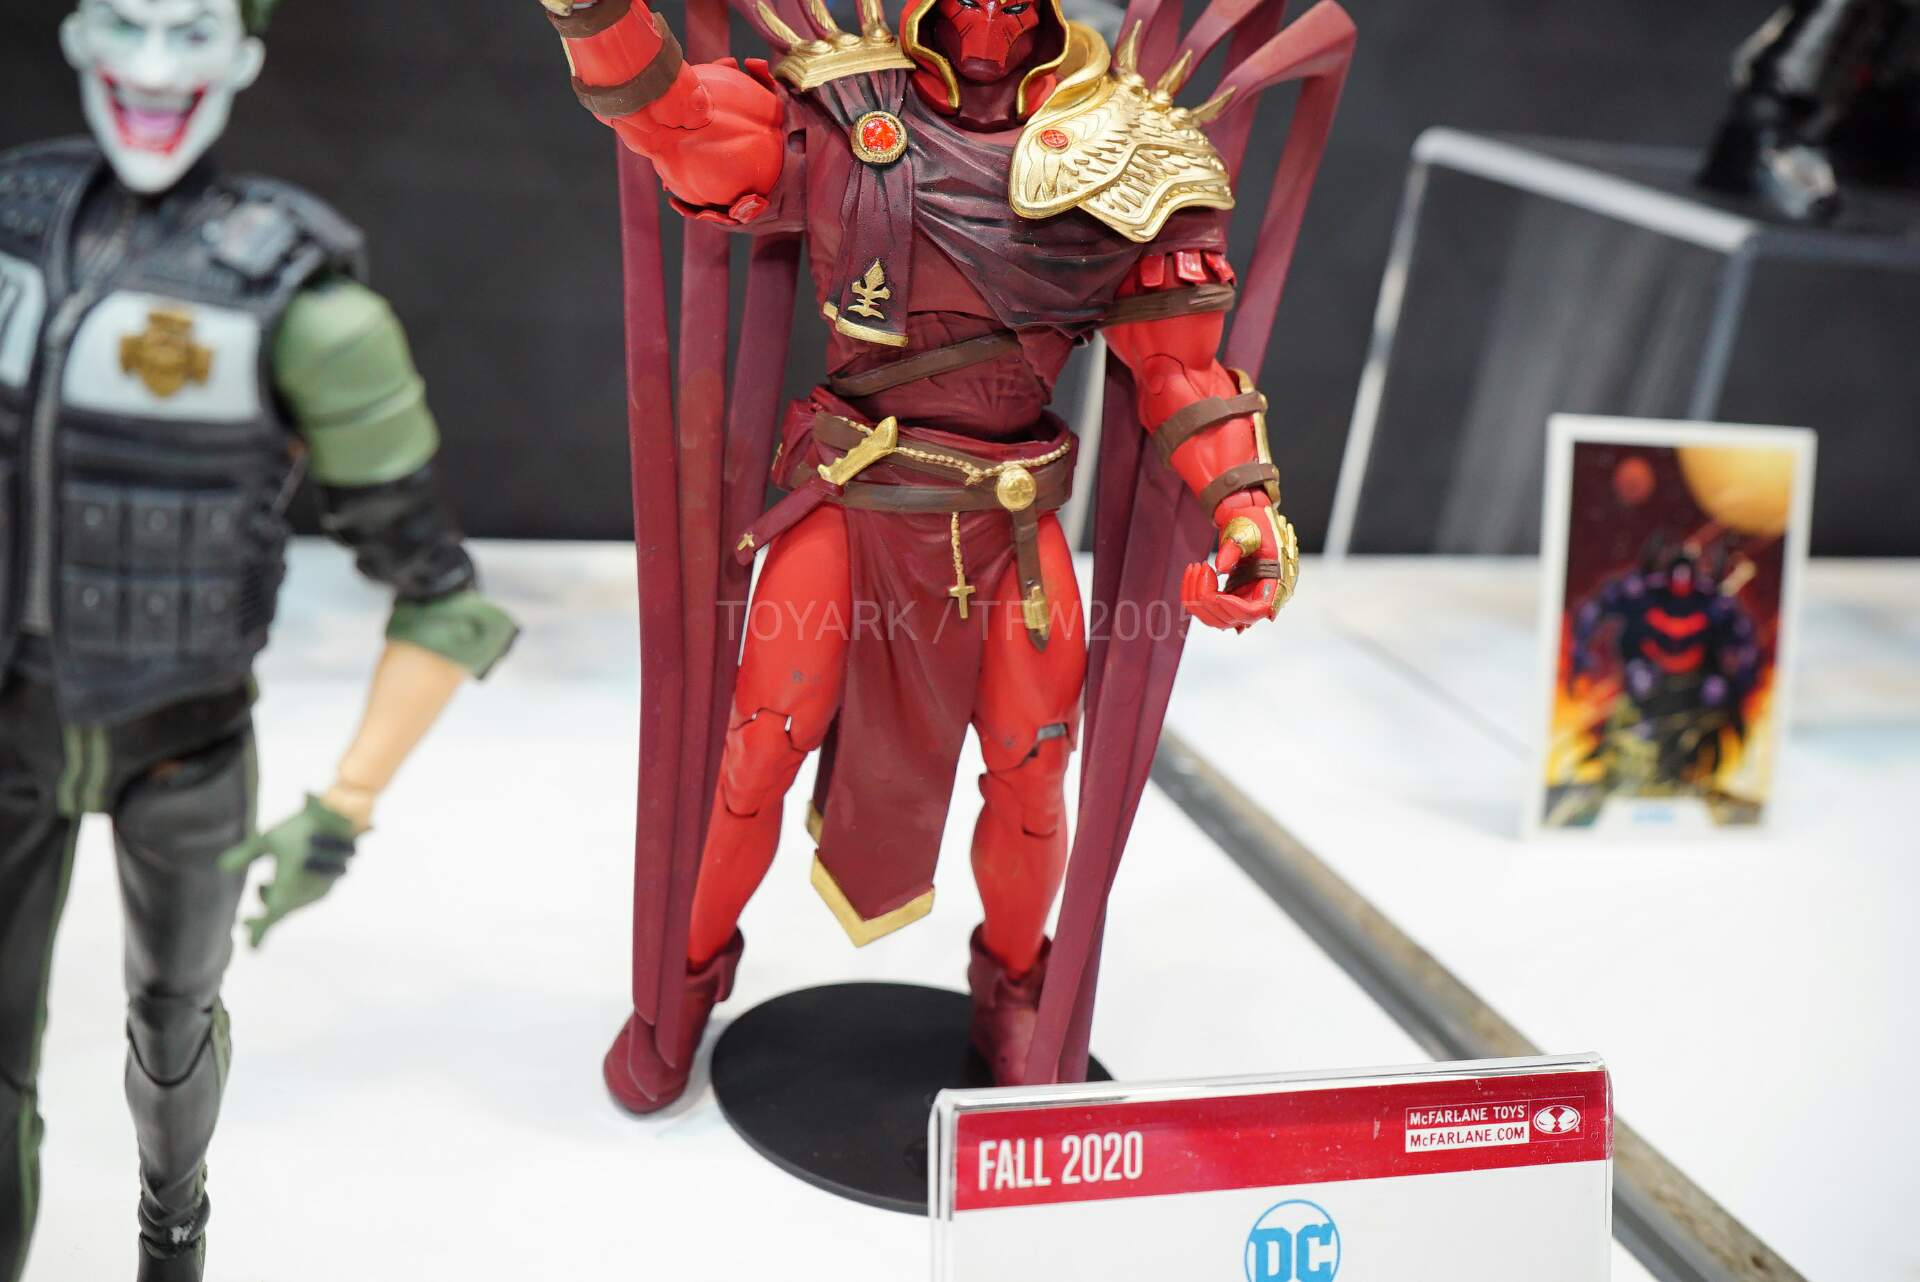 Toy-Fair-2020-McFarlane-DC-056.jpg